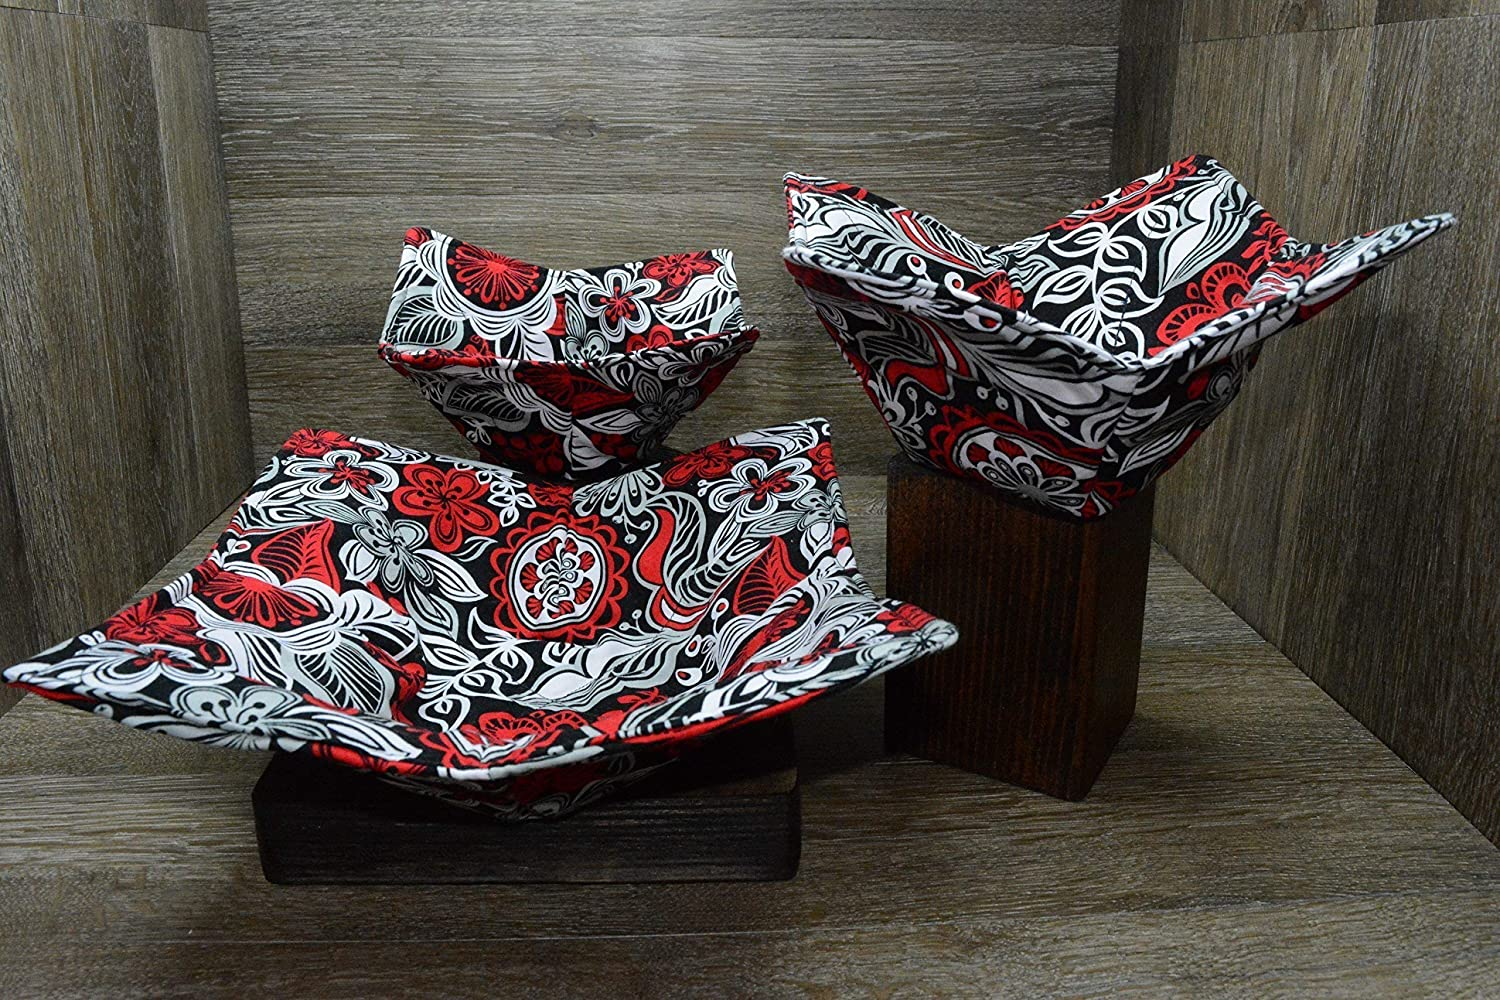 Microwave Bowl Cozies // Set of 3 // 1 Small Bowl Cozy // 1 Medium Bowl Cozy // 1 Dinner Plate Cozy // Rockin Red Floral